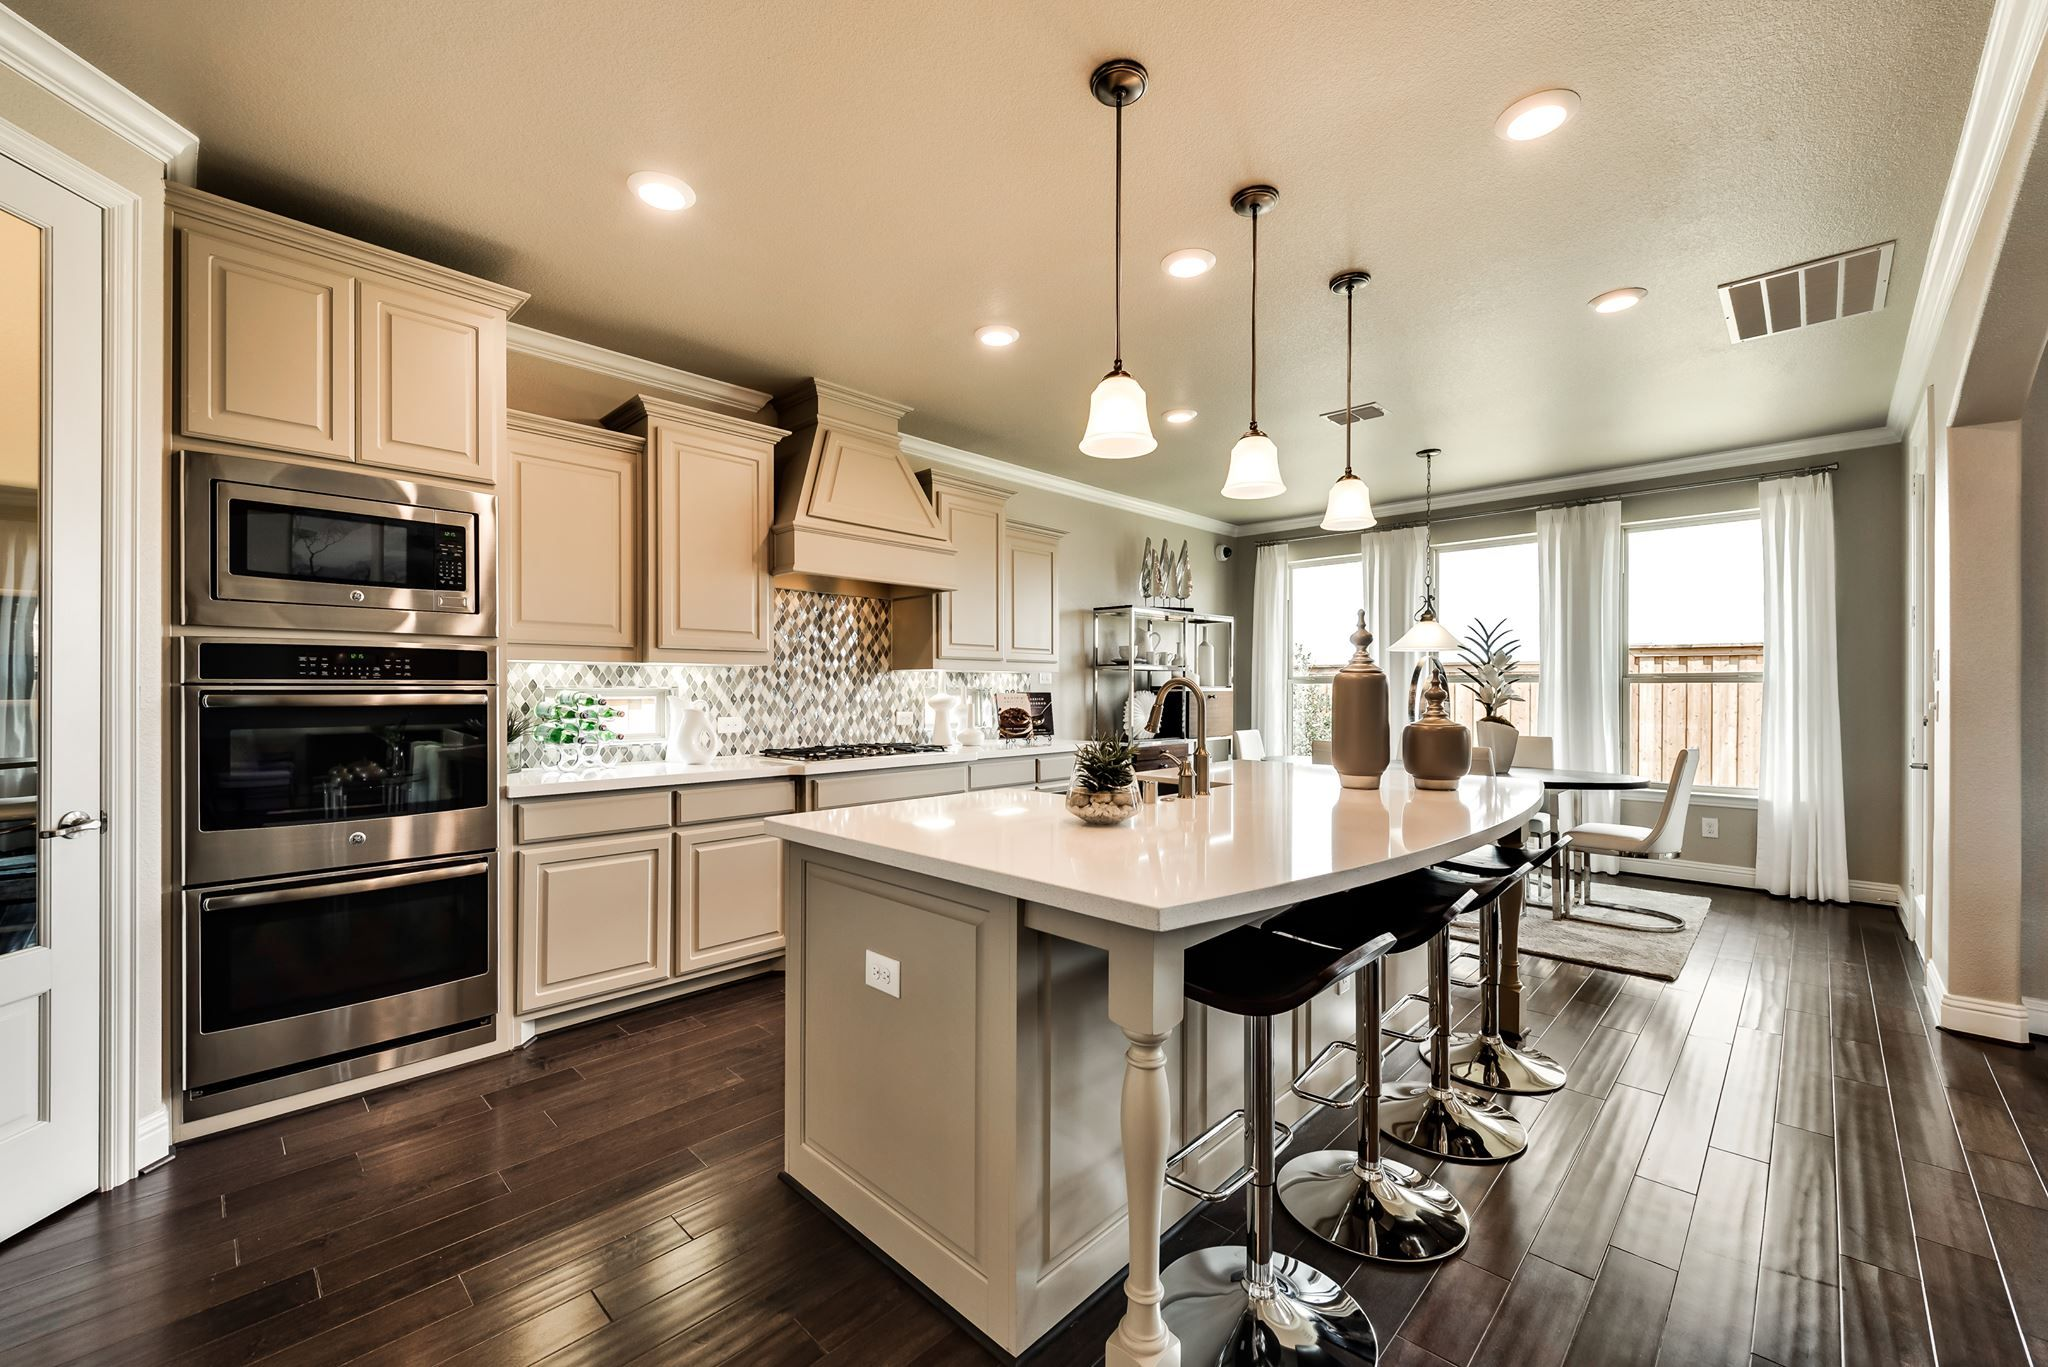 Good Morning Would You Love To Be Cooking In This Kitchen Kitchen Remodel Unfinished Kitchen Cabinets Kitchen On A Budget